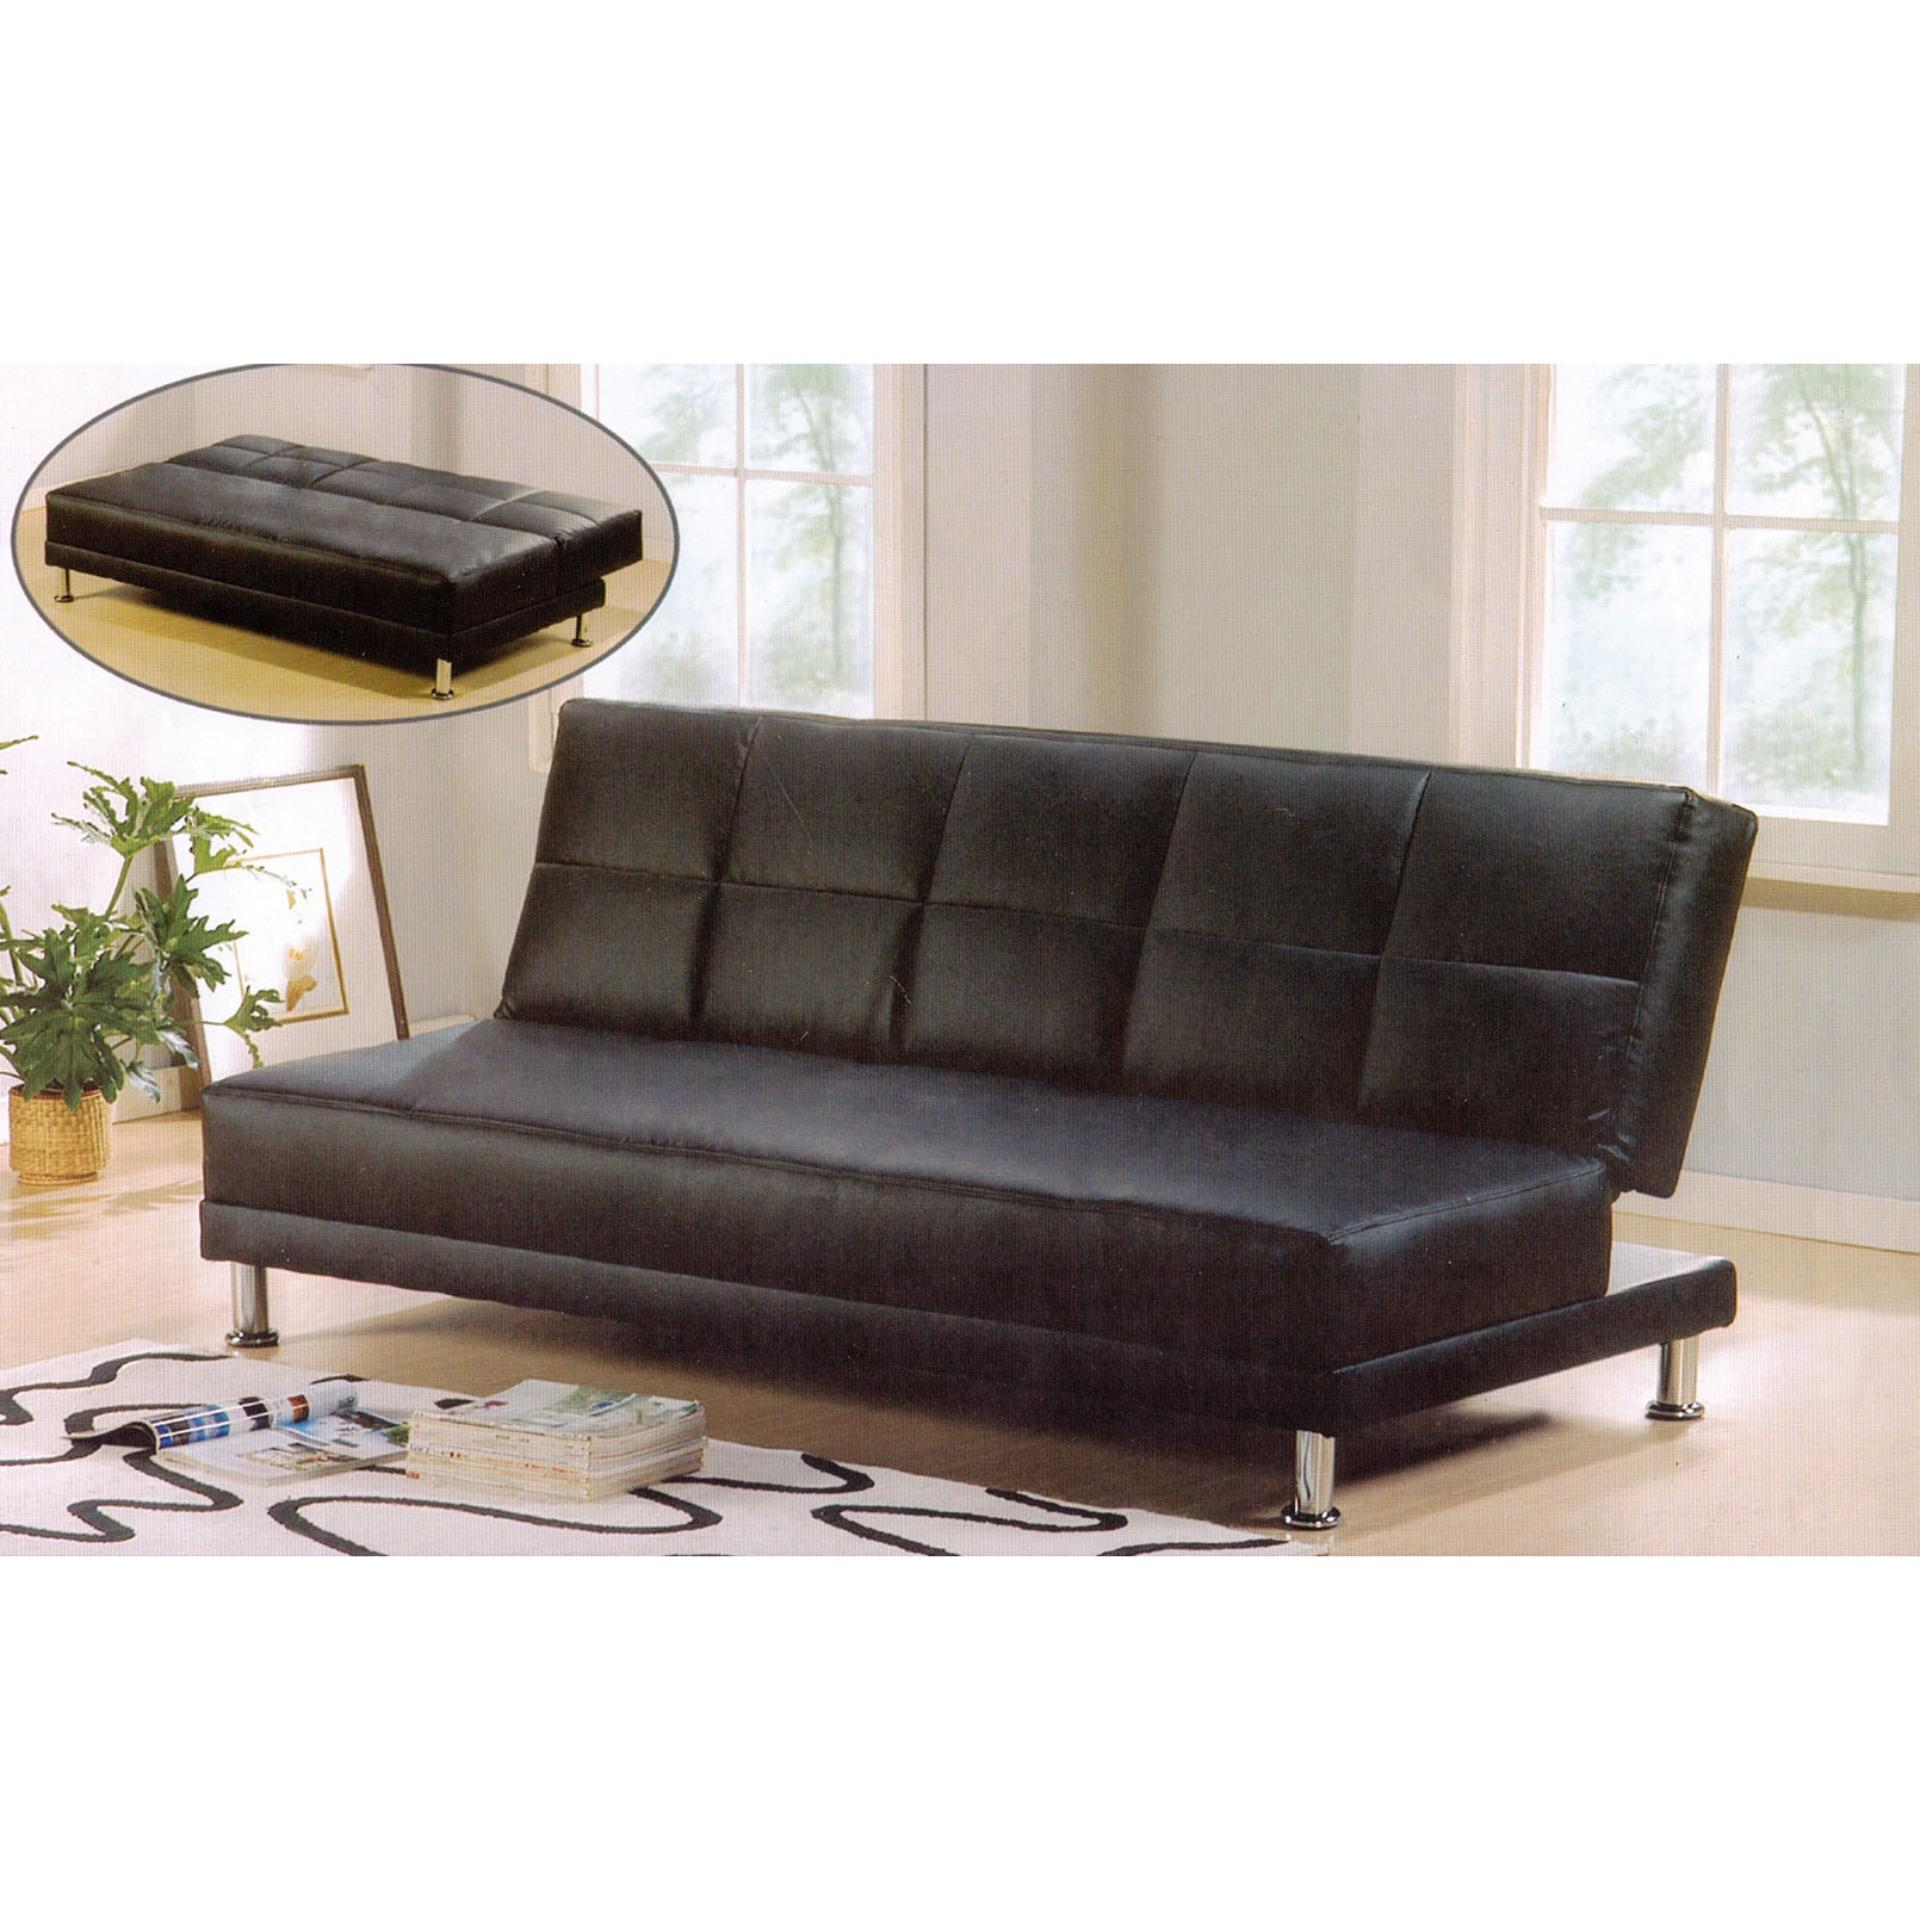 Leather Sofa Bed Cheap | Sofa Beds Amart Furniture